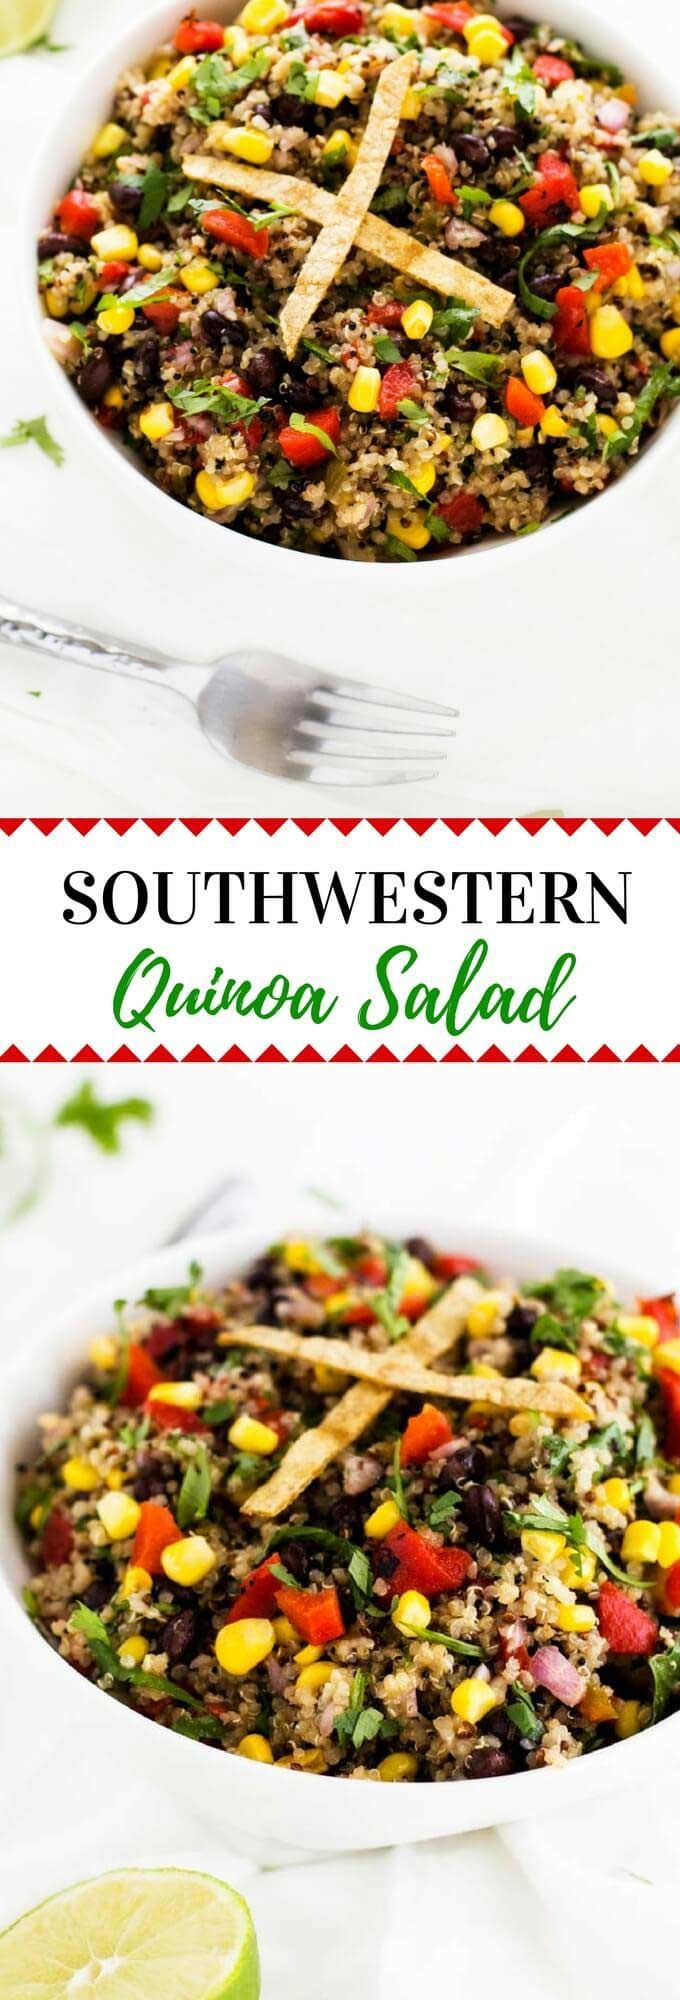 Southwestern Quinoa Salad - #vegan #glutenfree #quinoa  This Southwestern Quinoa salad is a vegan quinoa salad that even omnivores will love!  Colorful, delicious and packed with plant-based nutrition.